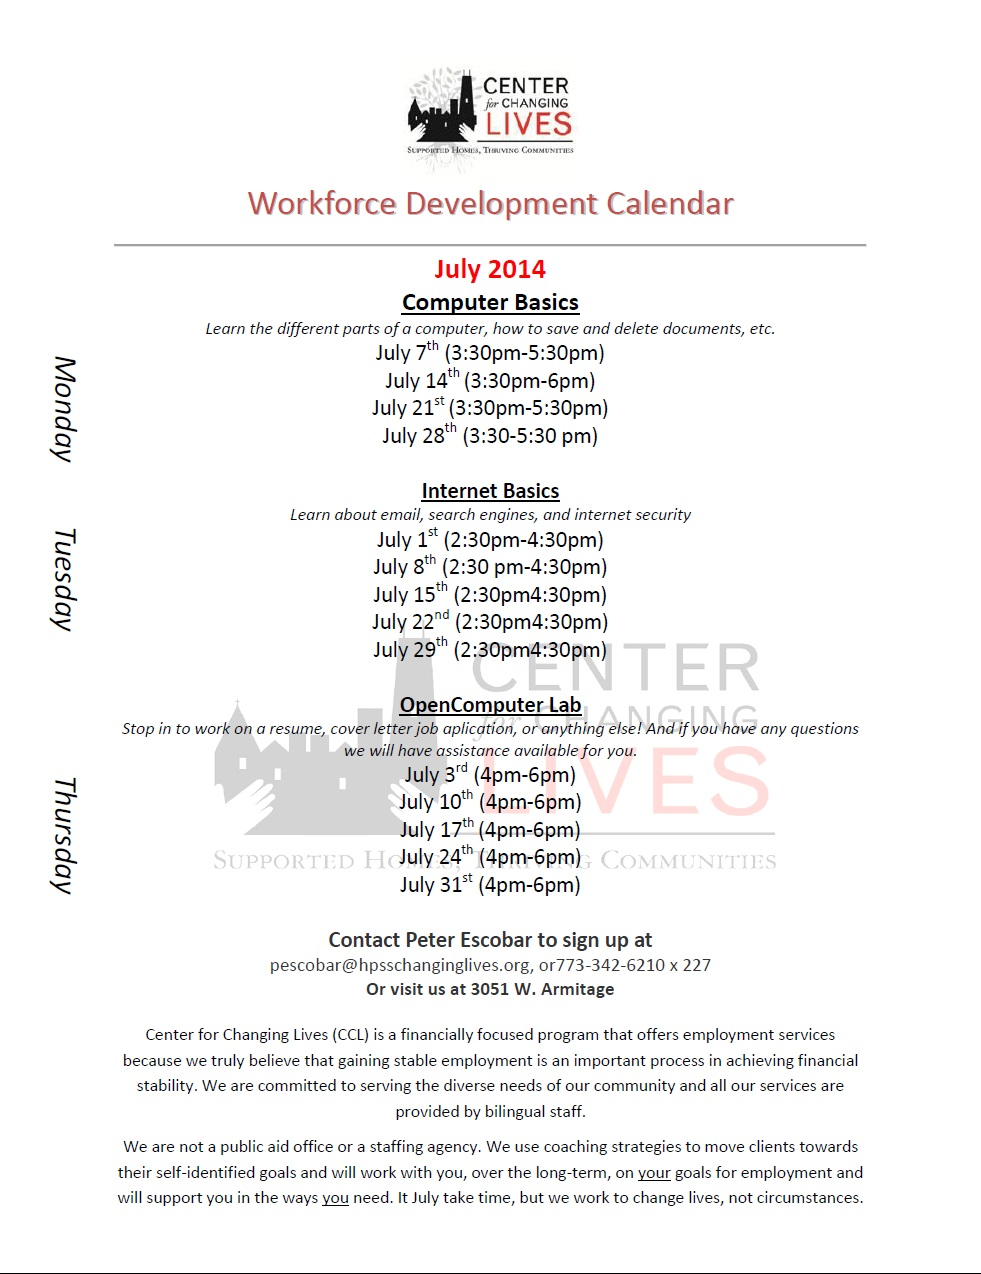 July Workforce Development Calendar | Center for Changing Lives